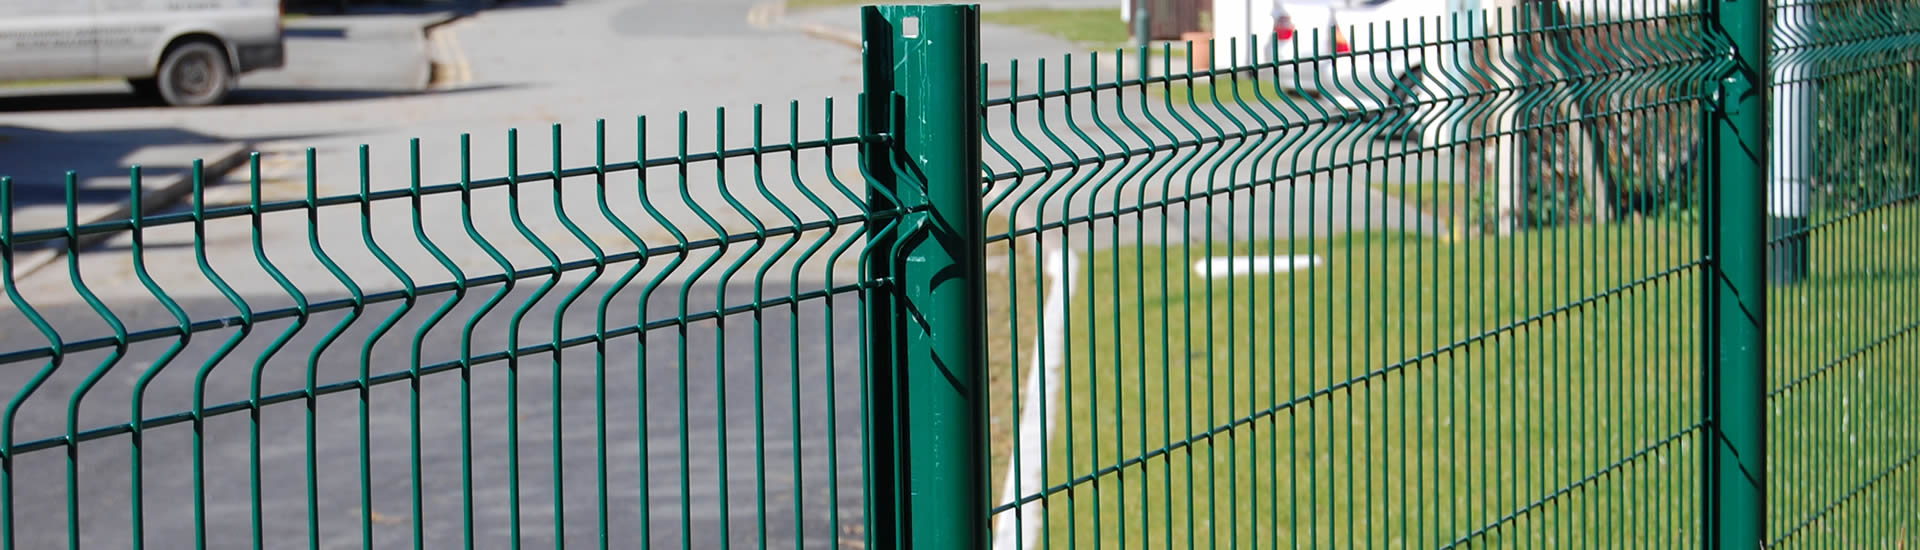 Green PVC coated single welded wire fences are installed on the street.